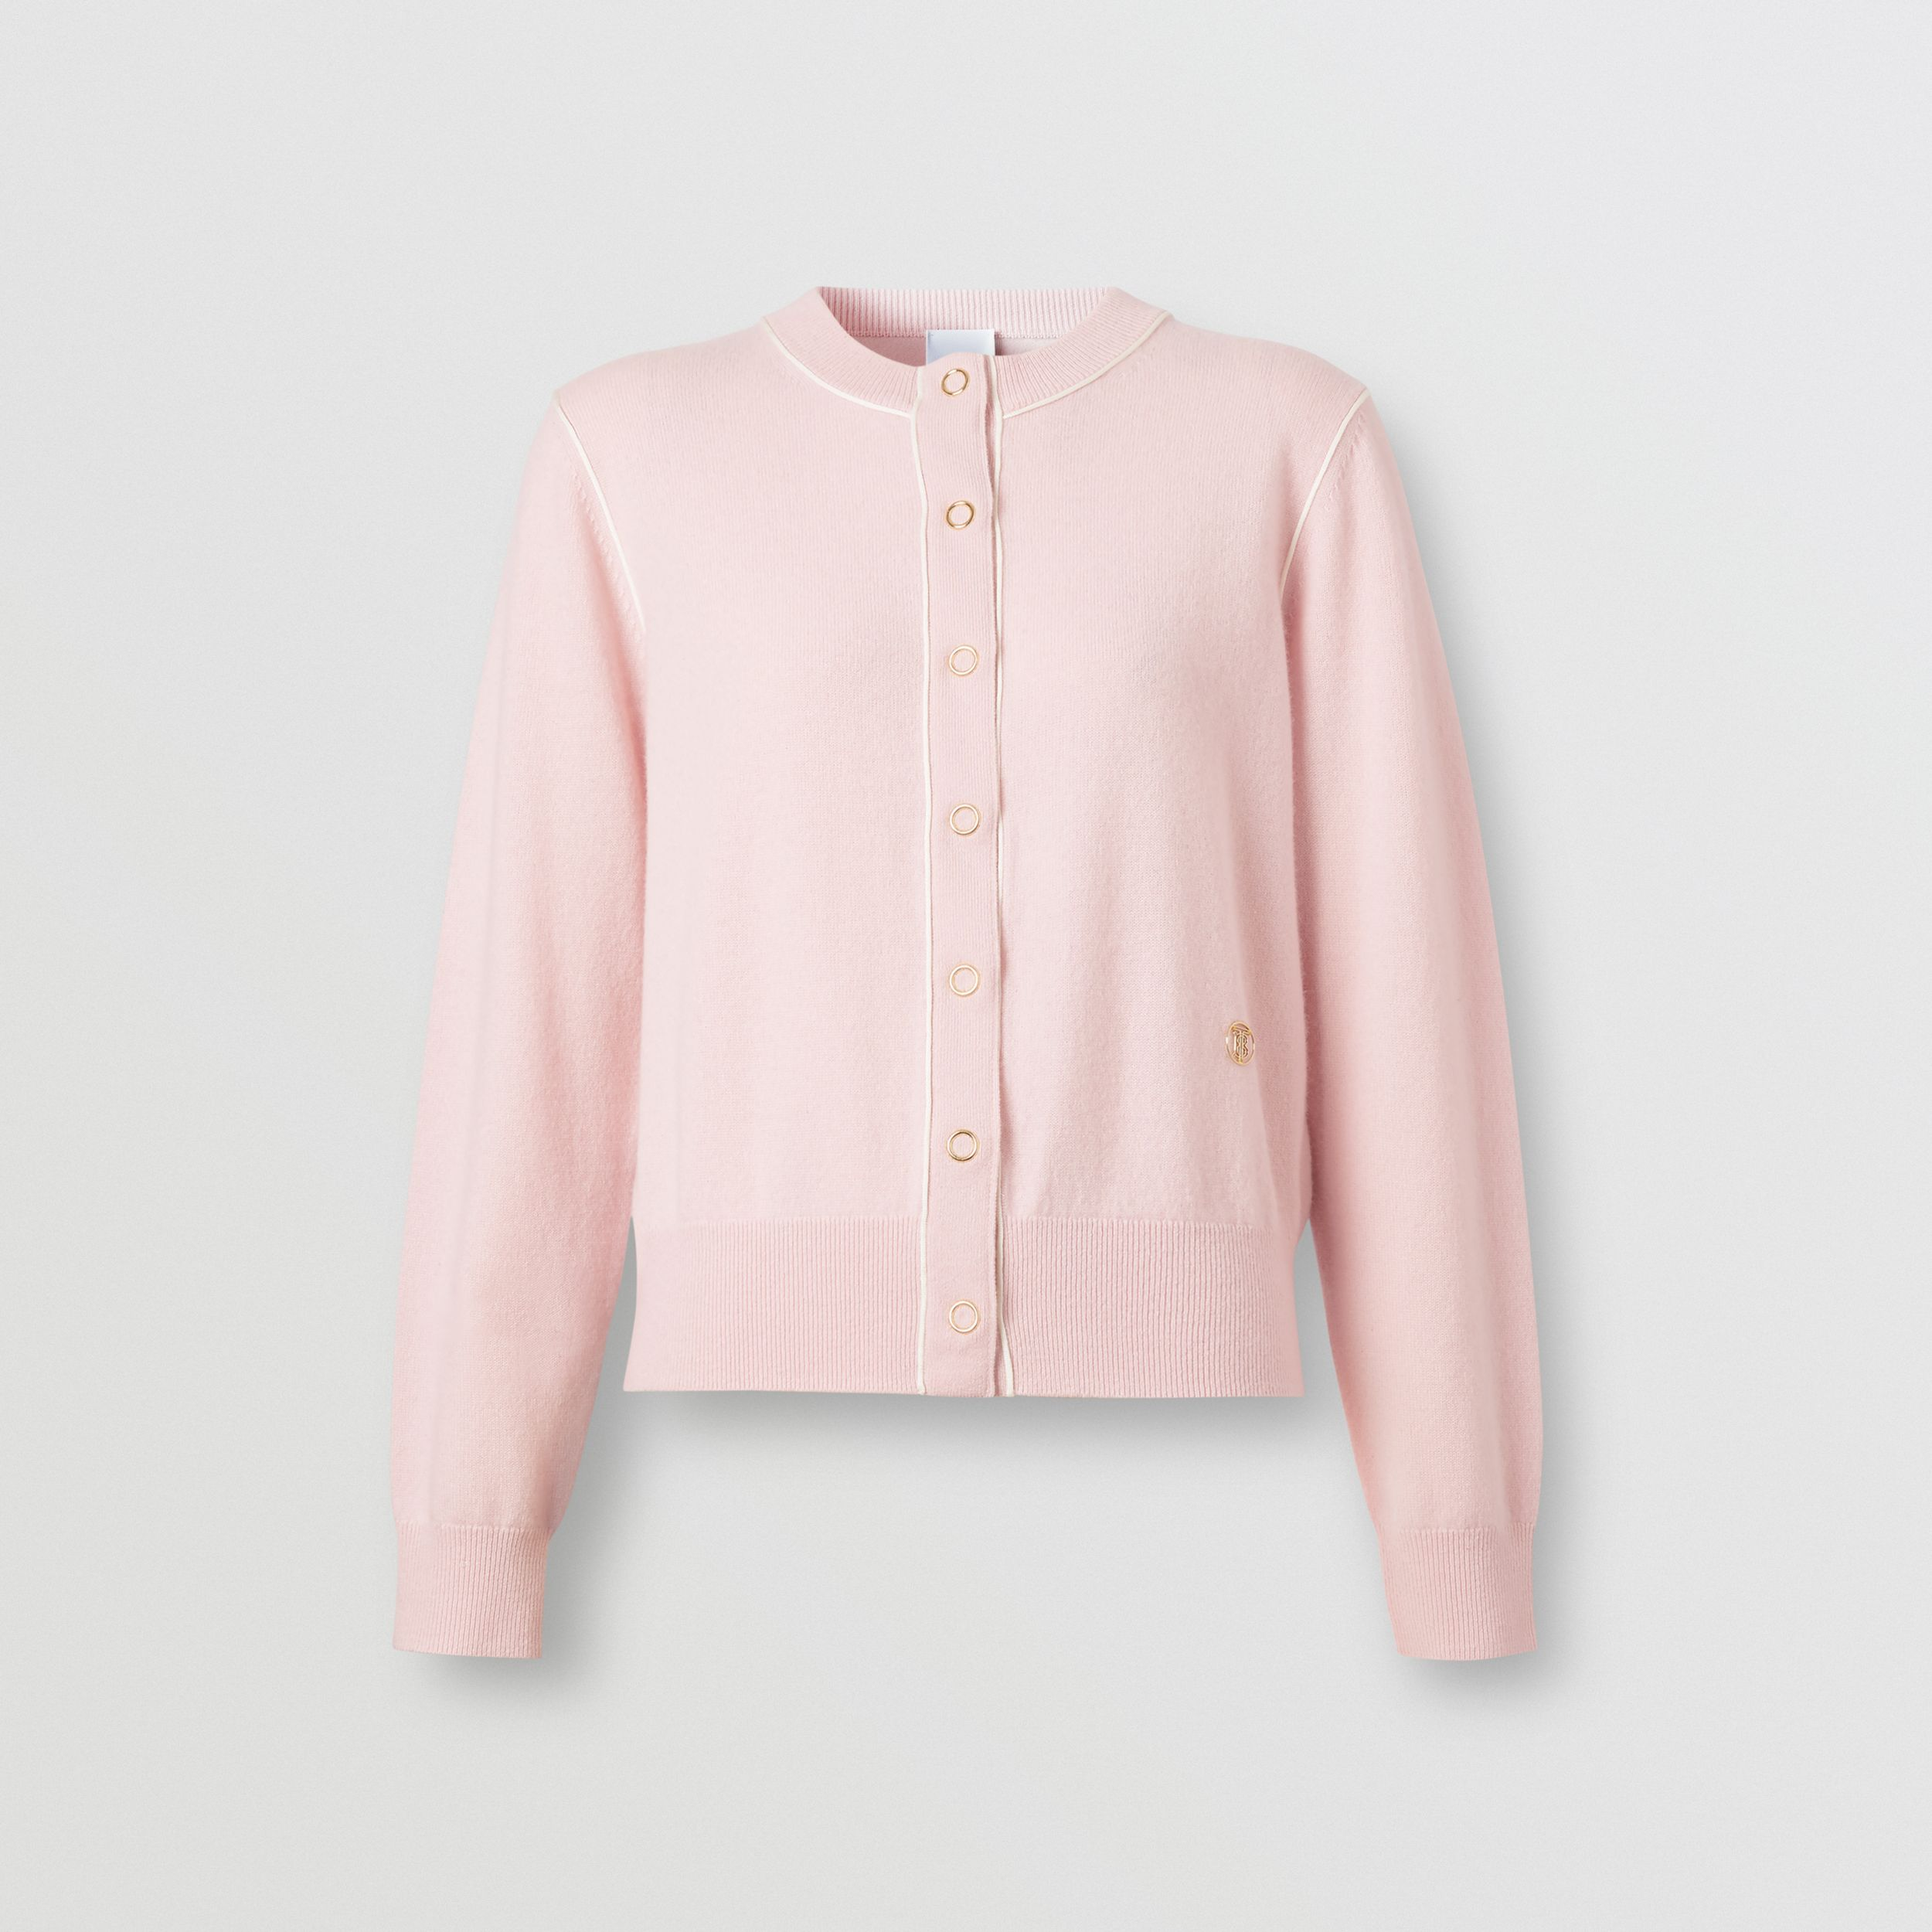 Silk Trim Monogram Motif Cashmere Cardigan in Copper Pink - Women | Burberry Australia - 4